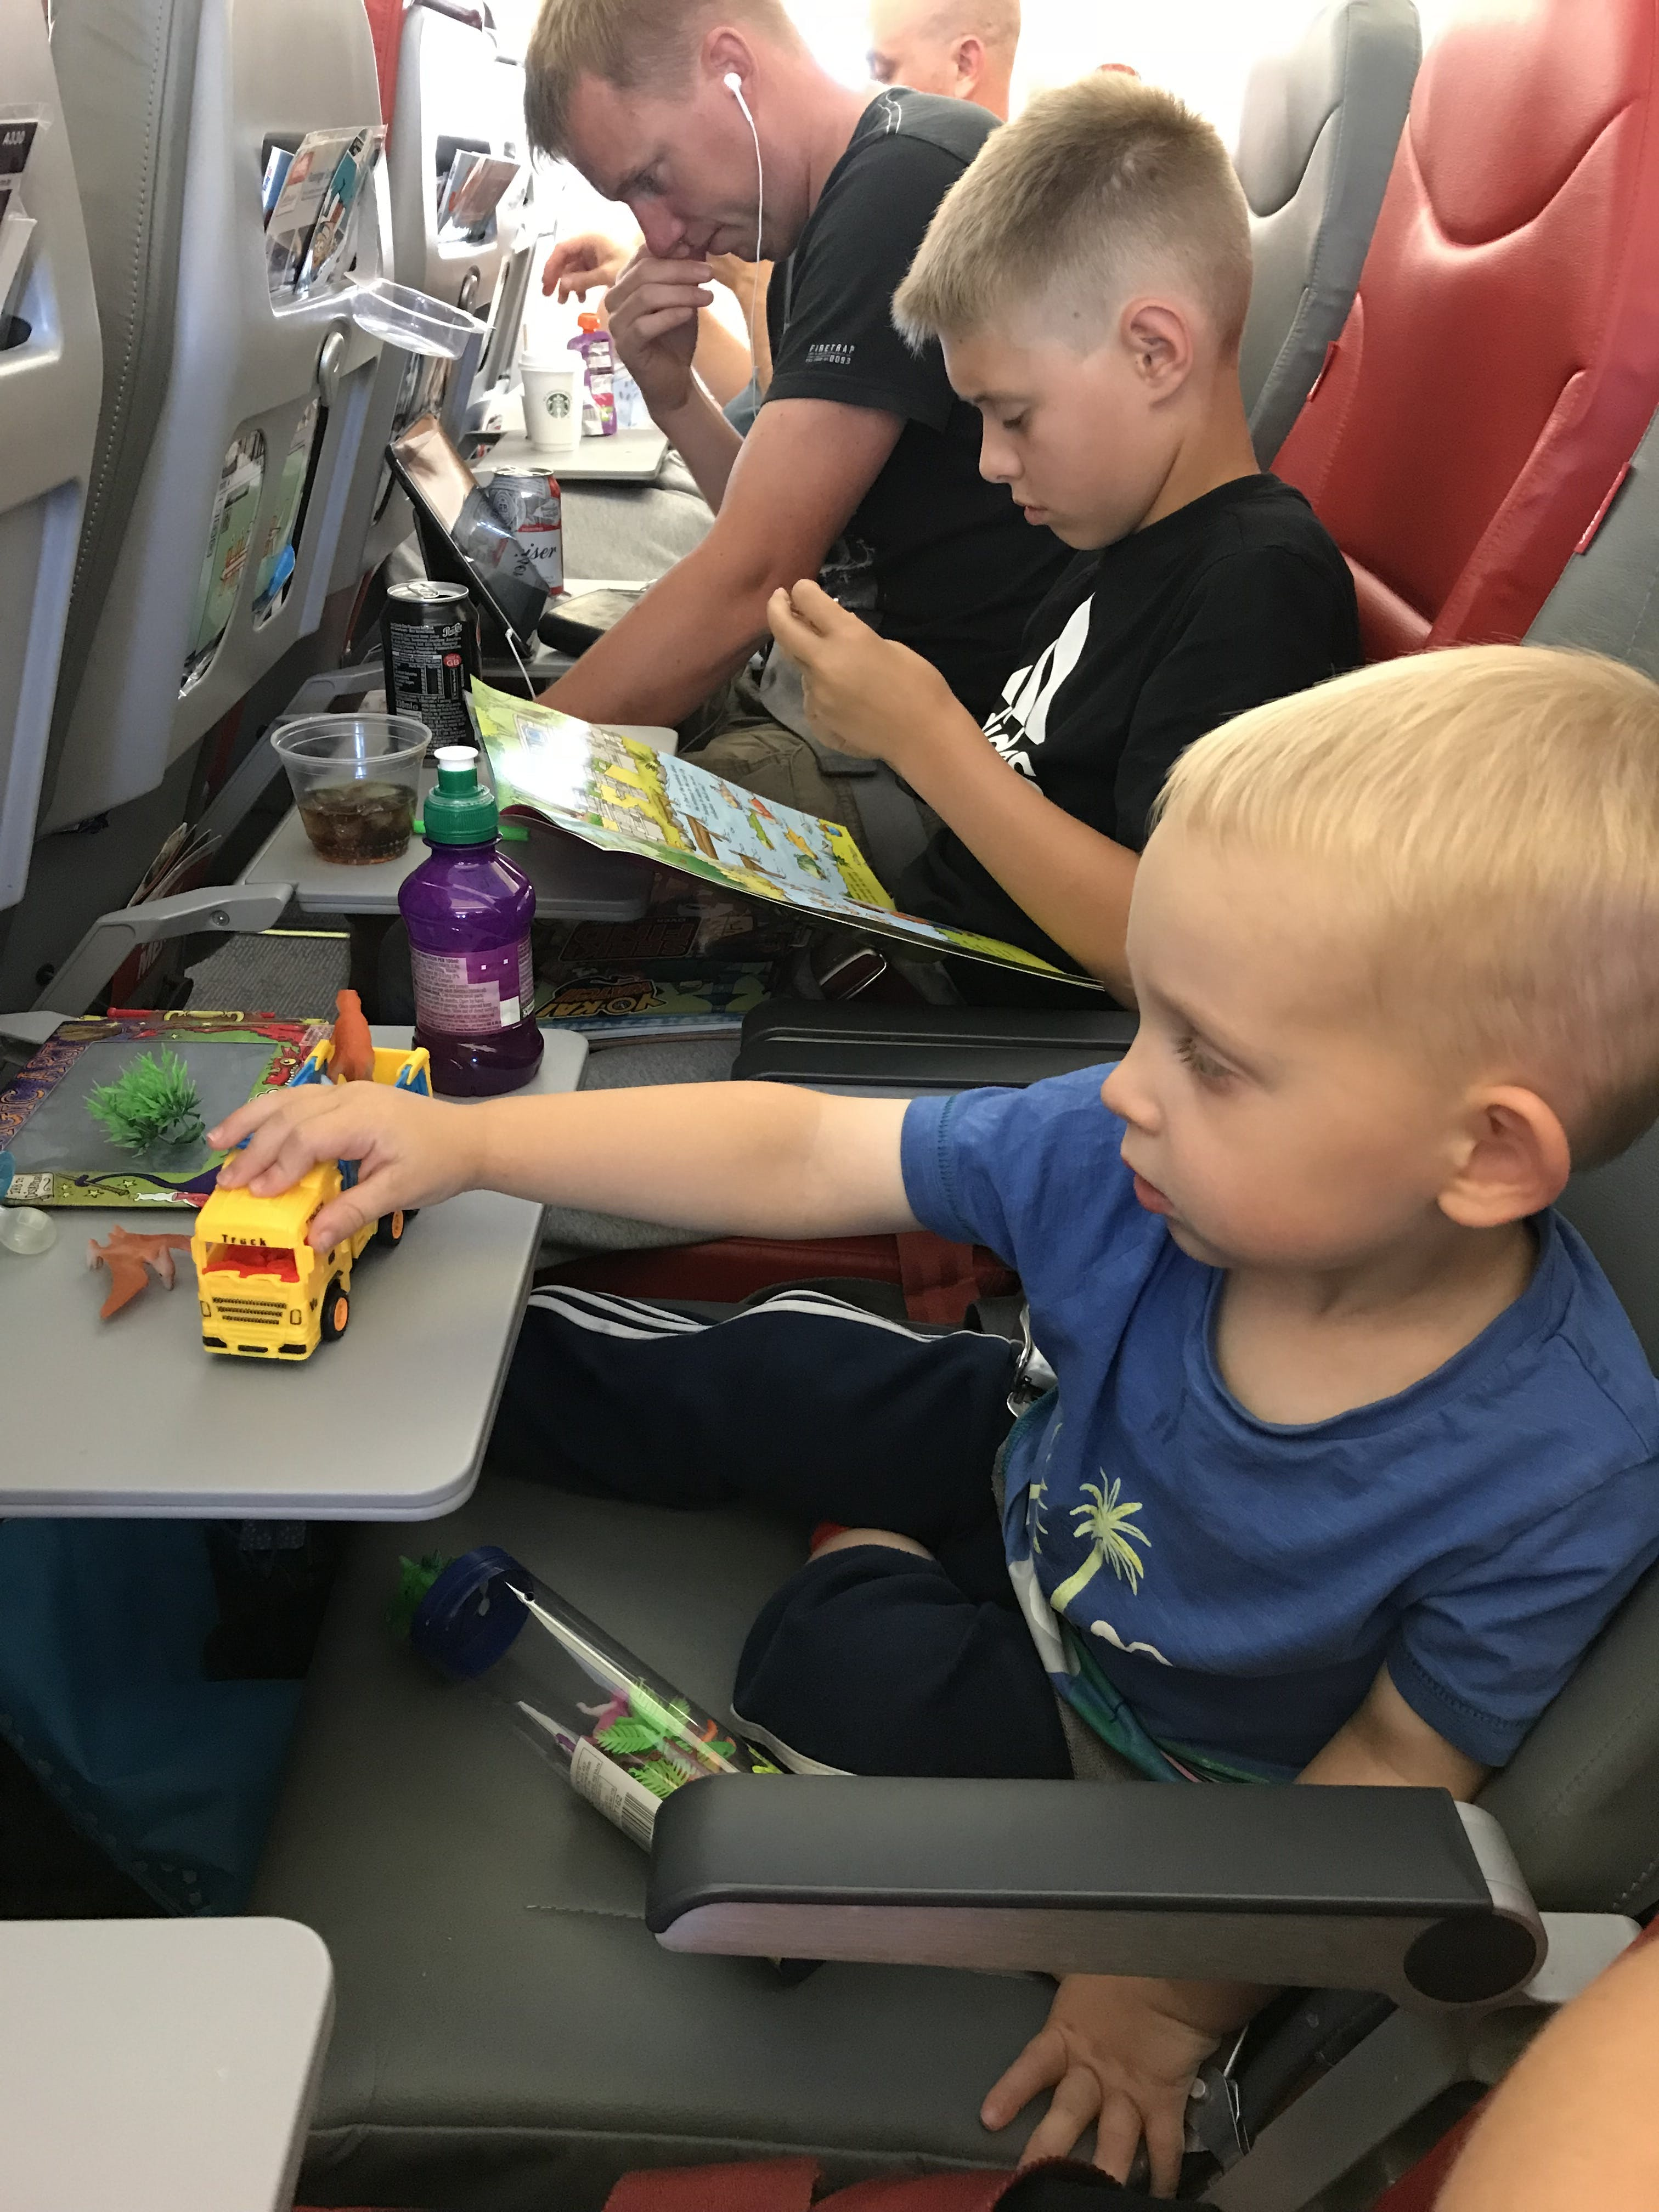 Long Trip: For Boys Age 1-3 Years